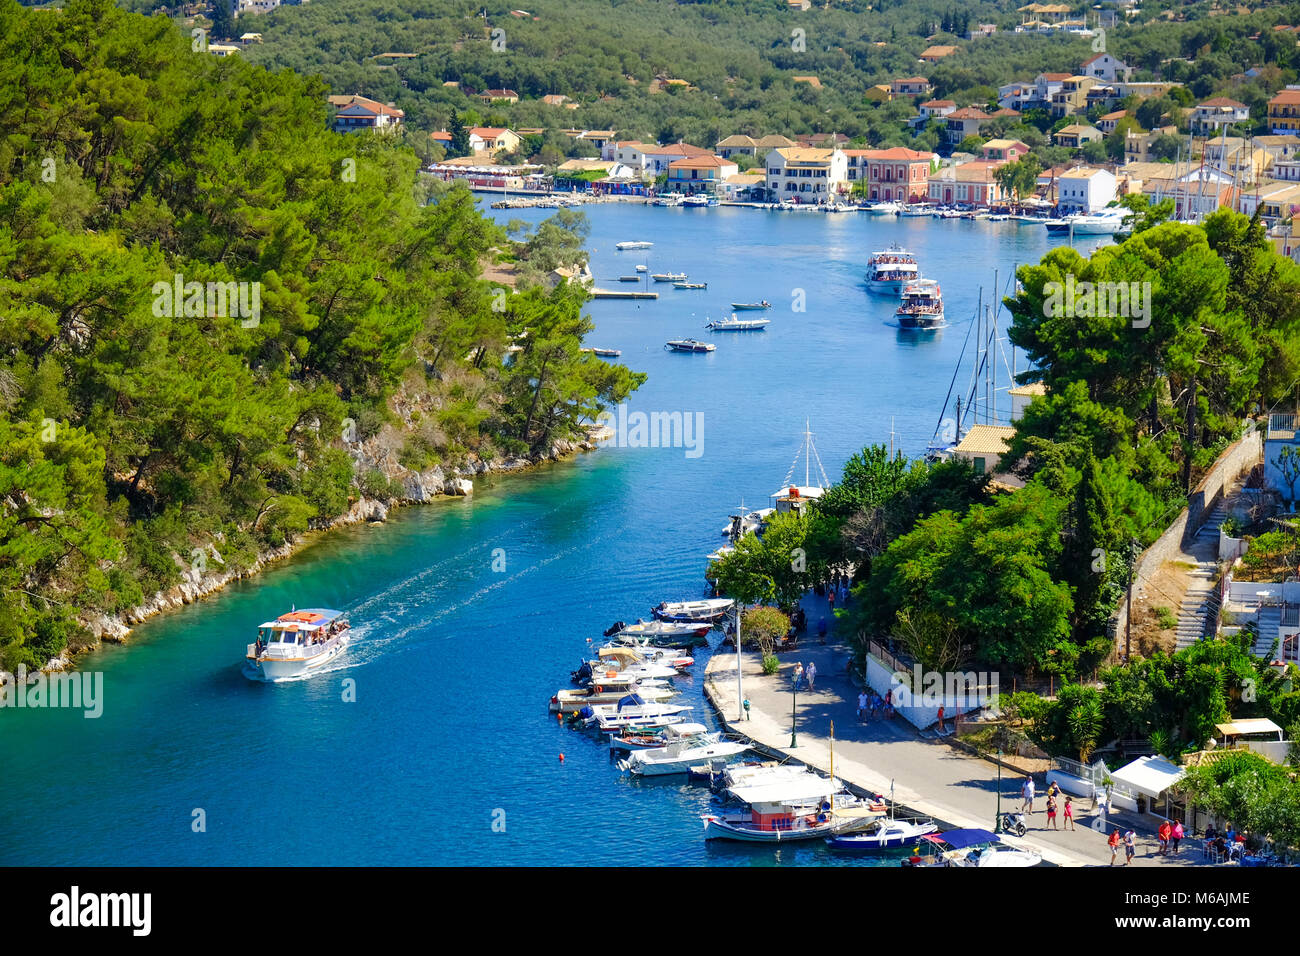 Old harbour of Paxos island with boat entering the grand canal - Stock Image